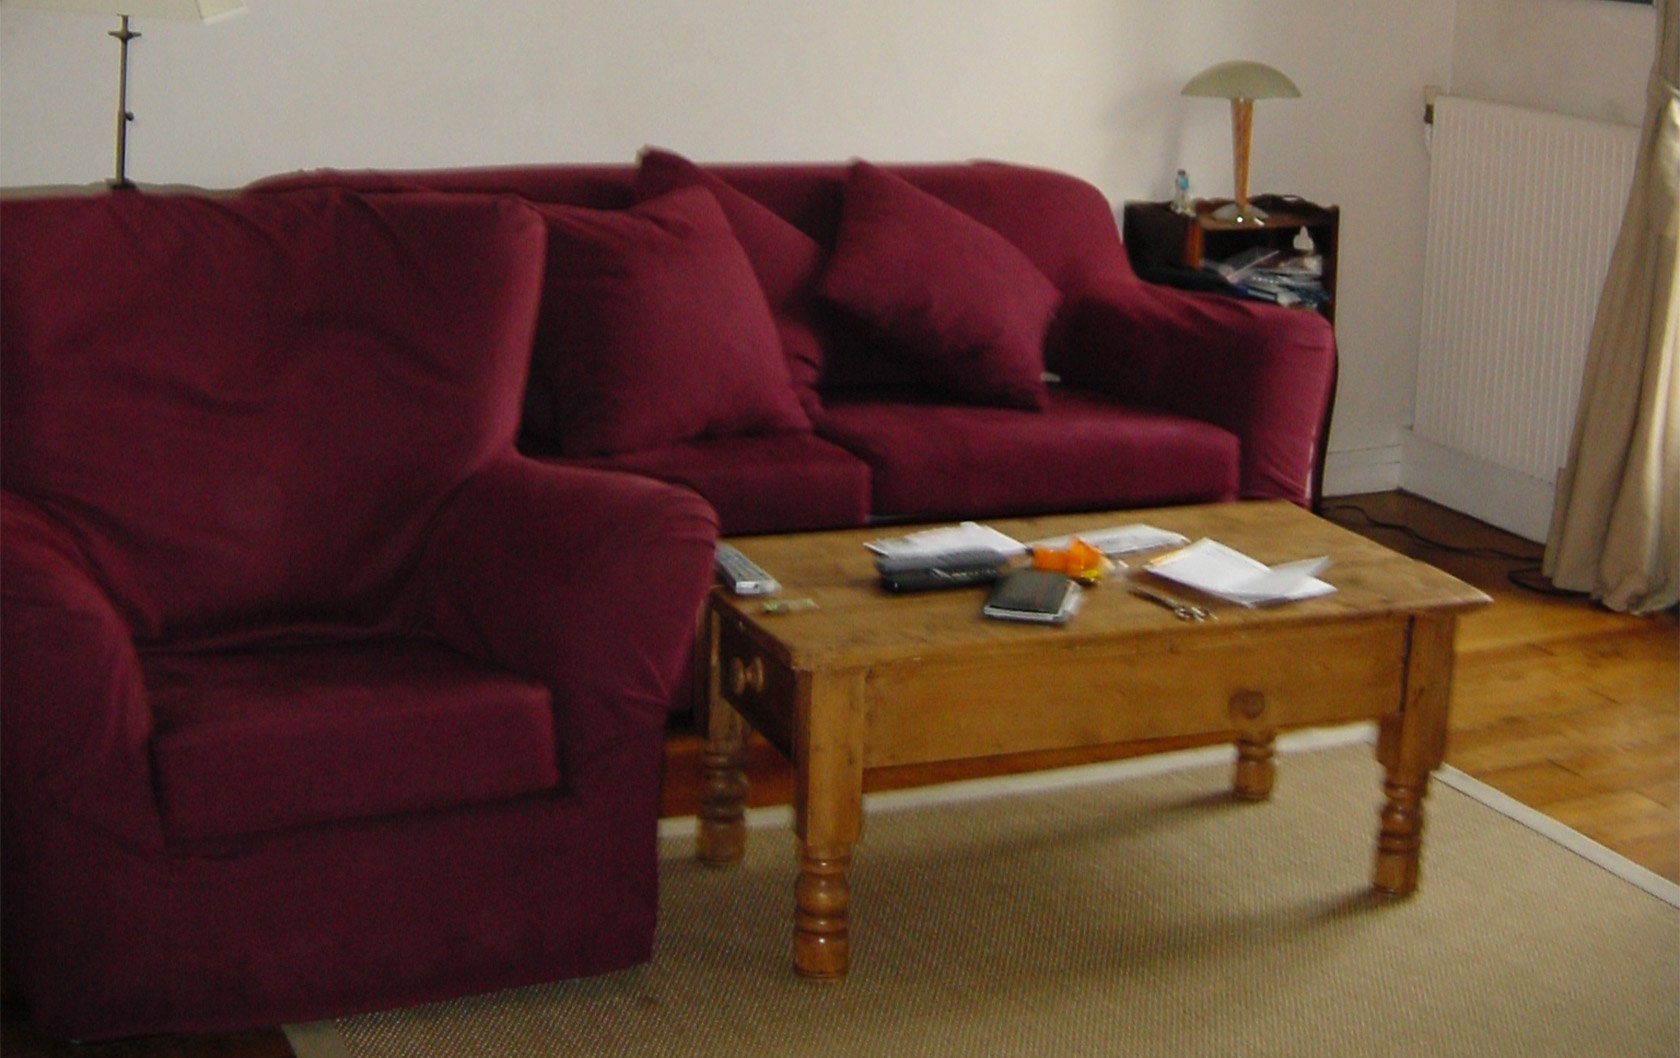 merlot-original-red-sofas